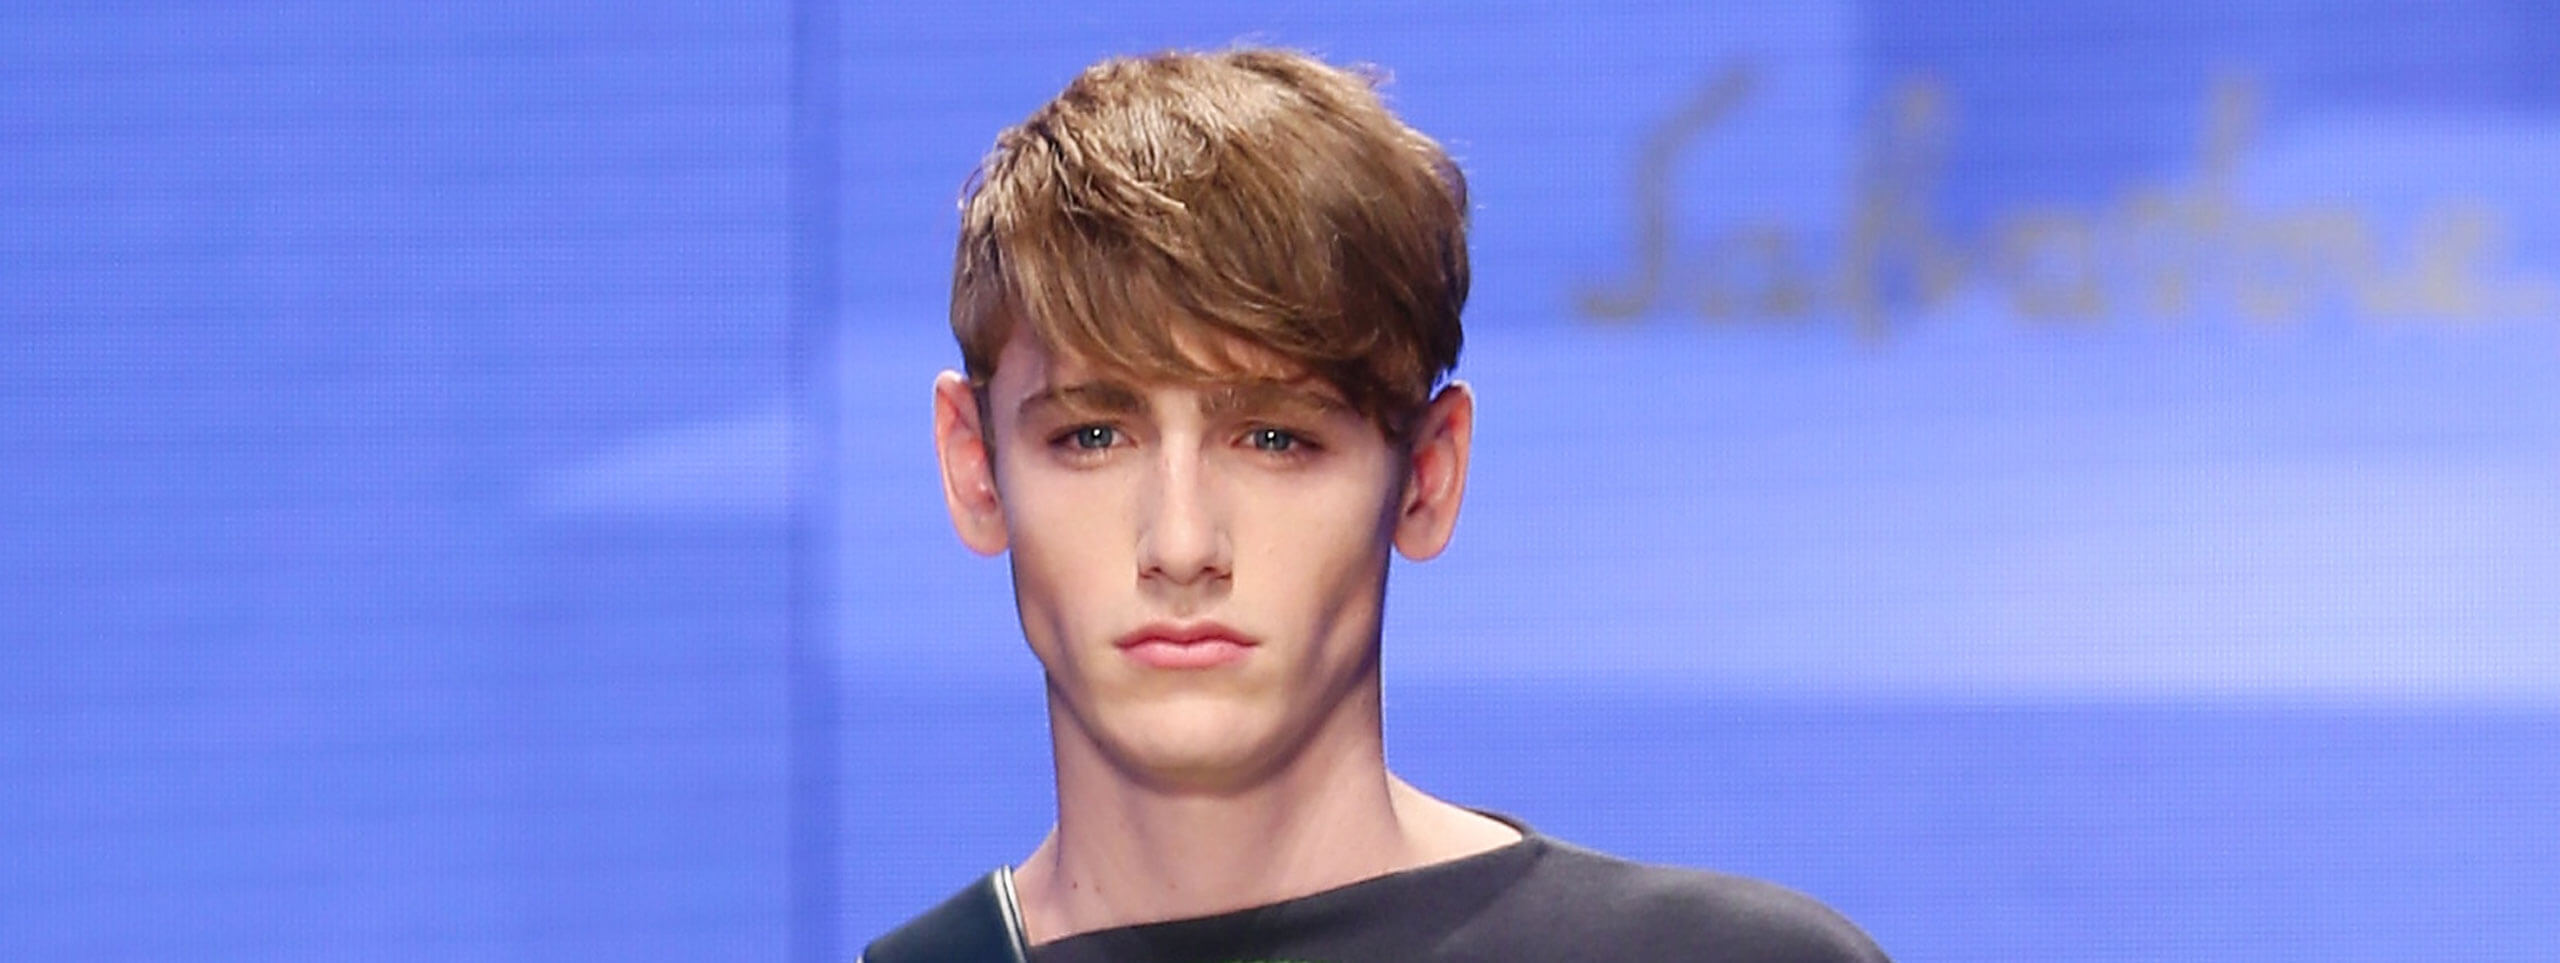 short-hair-hairstyles-for-men